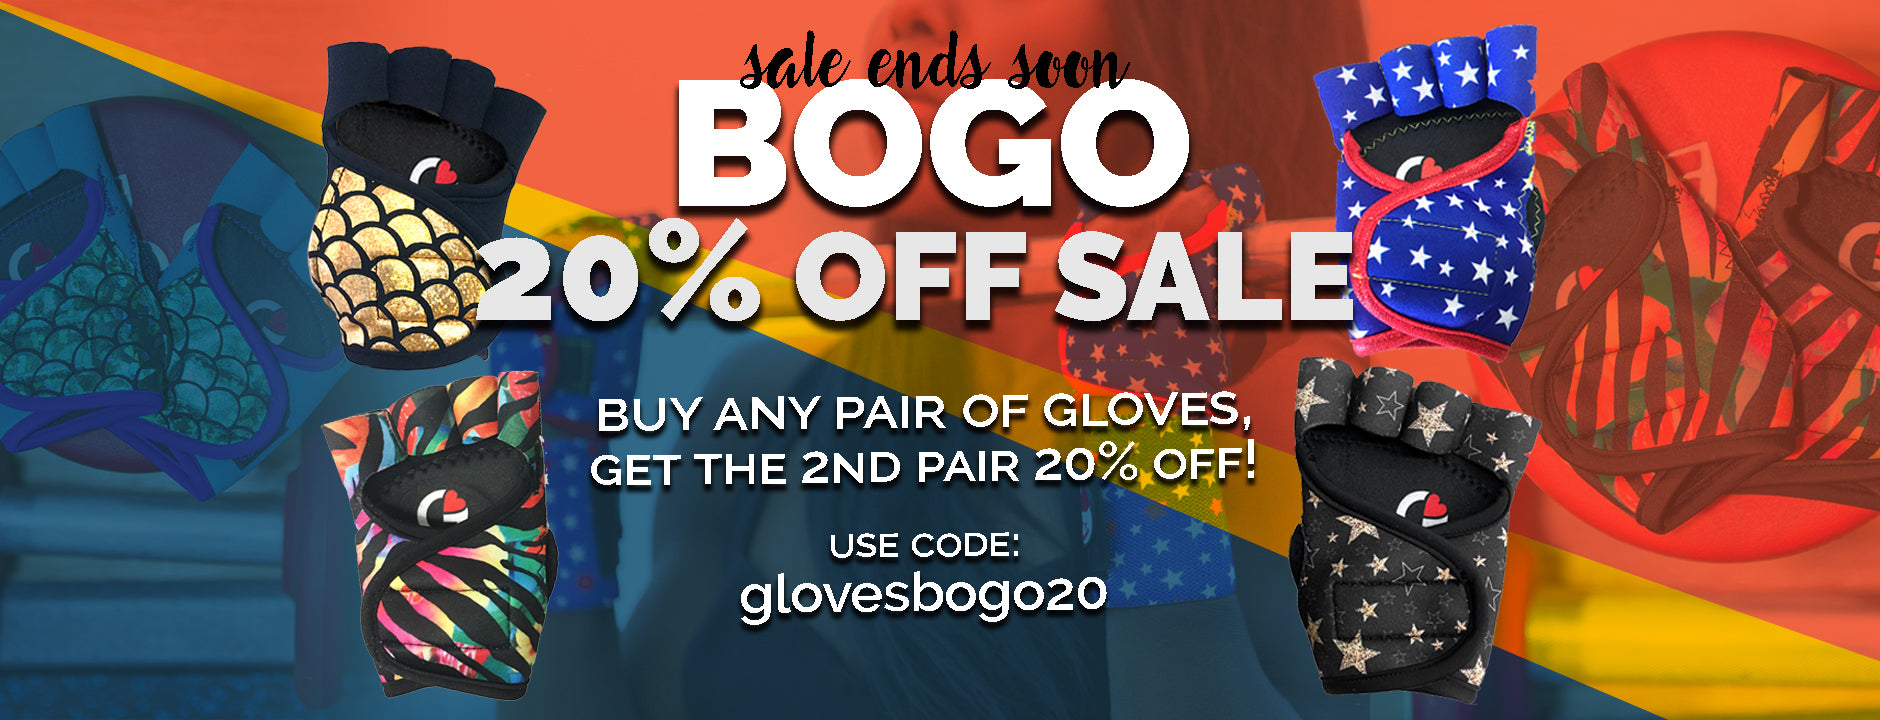 gloves bogo 20% off sale